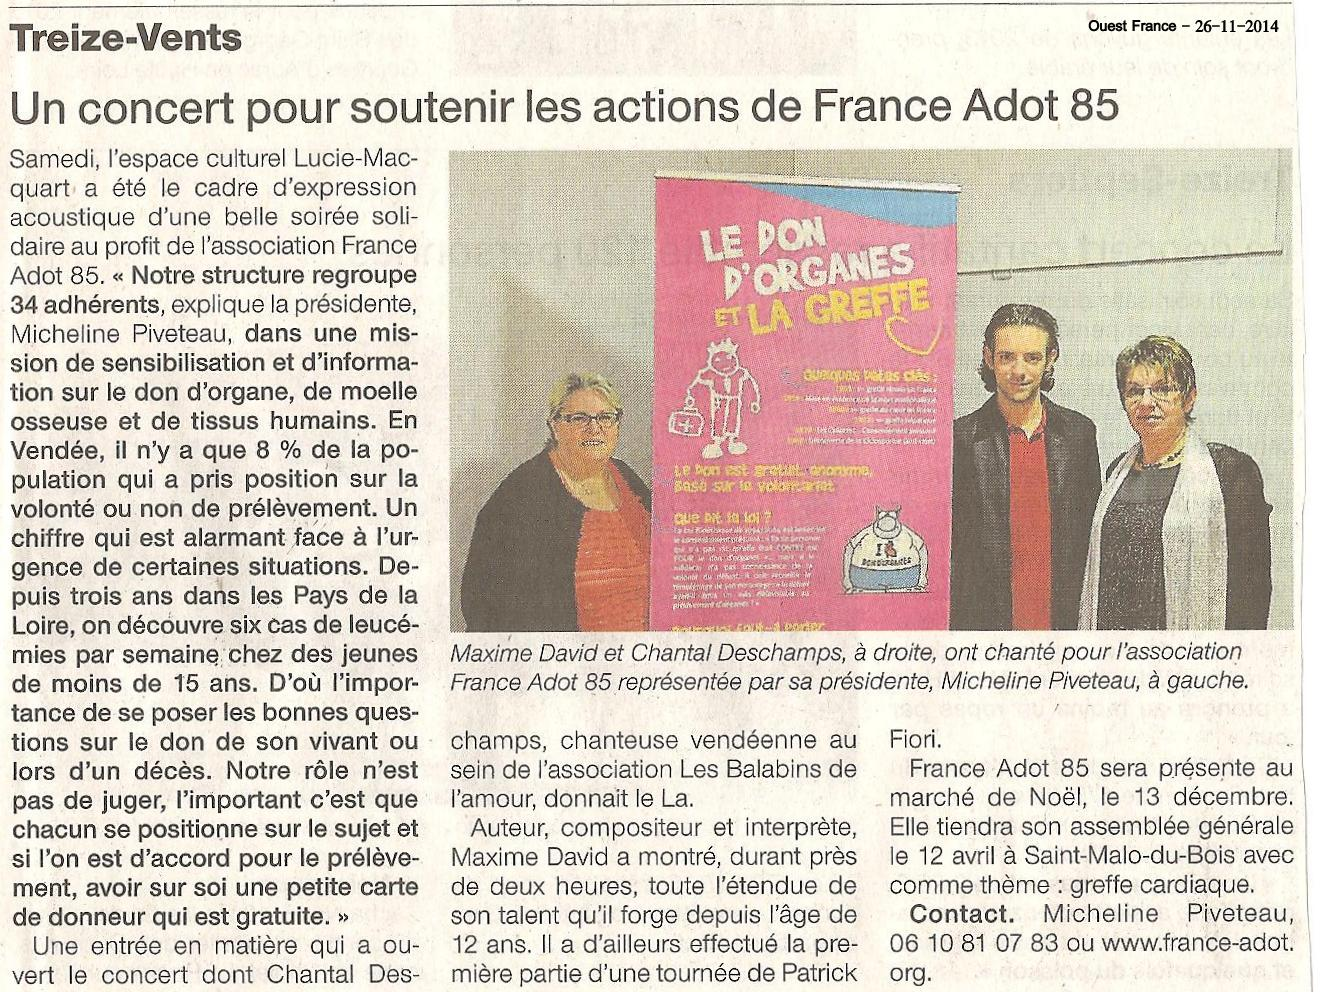 Ouest France - Treize Vents 26-11-2014